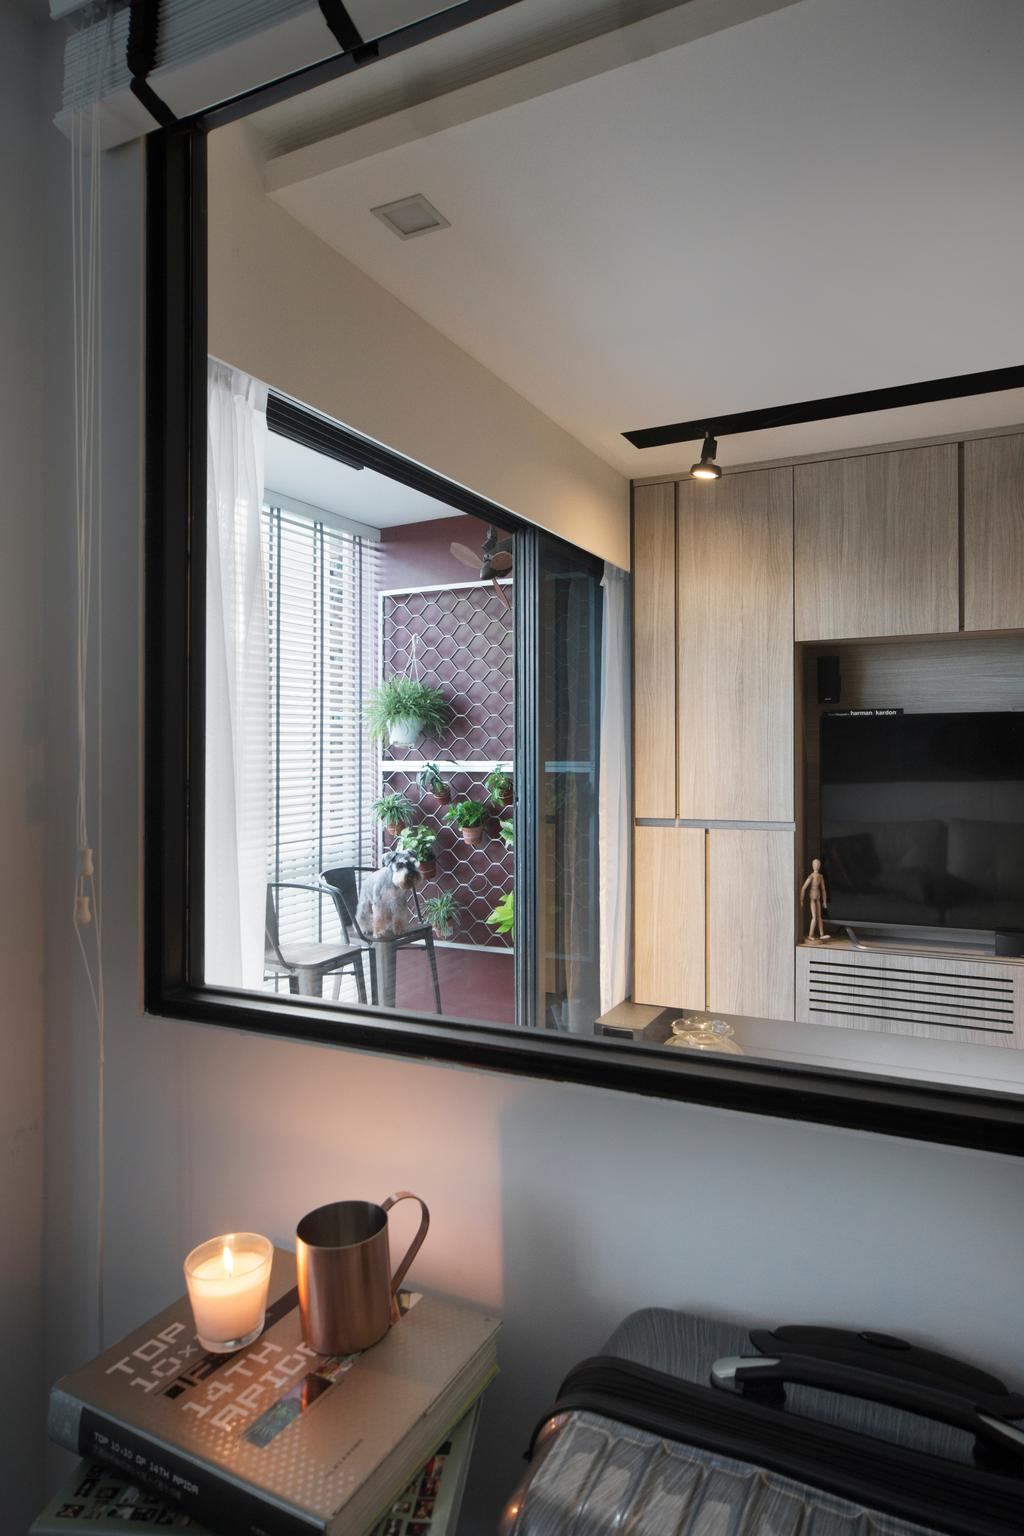 Contemporary, Condo, RiverParc Residence, Interior Designer, Form & Space, Window, Appliance, Electrical Device, Microwave, Oven, Fireplace, Hearth